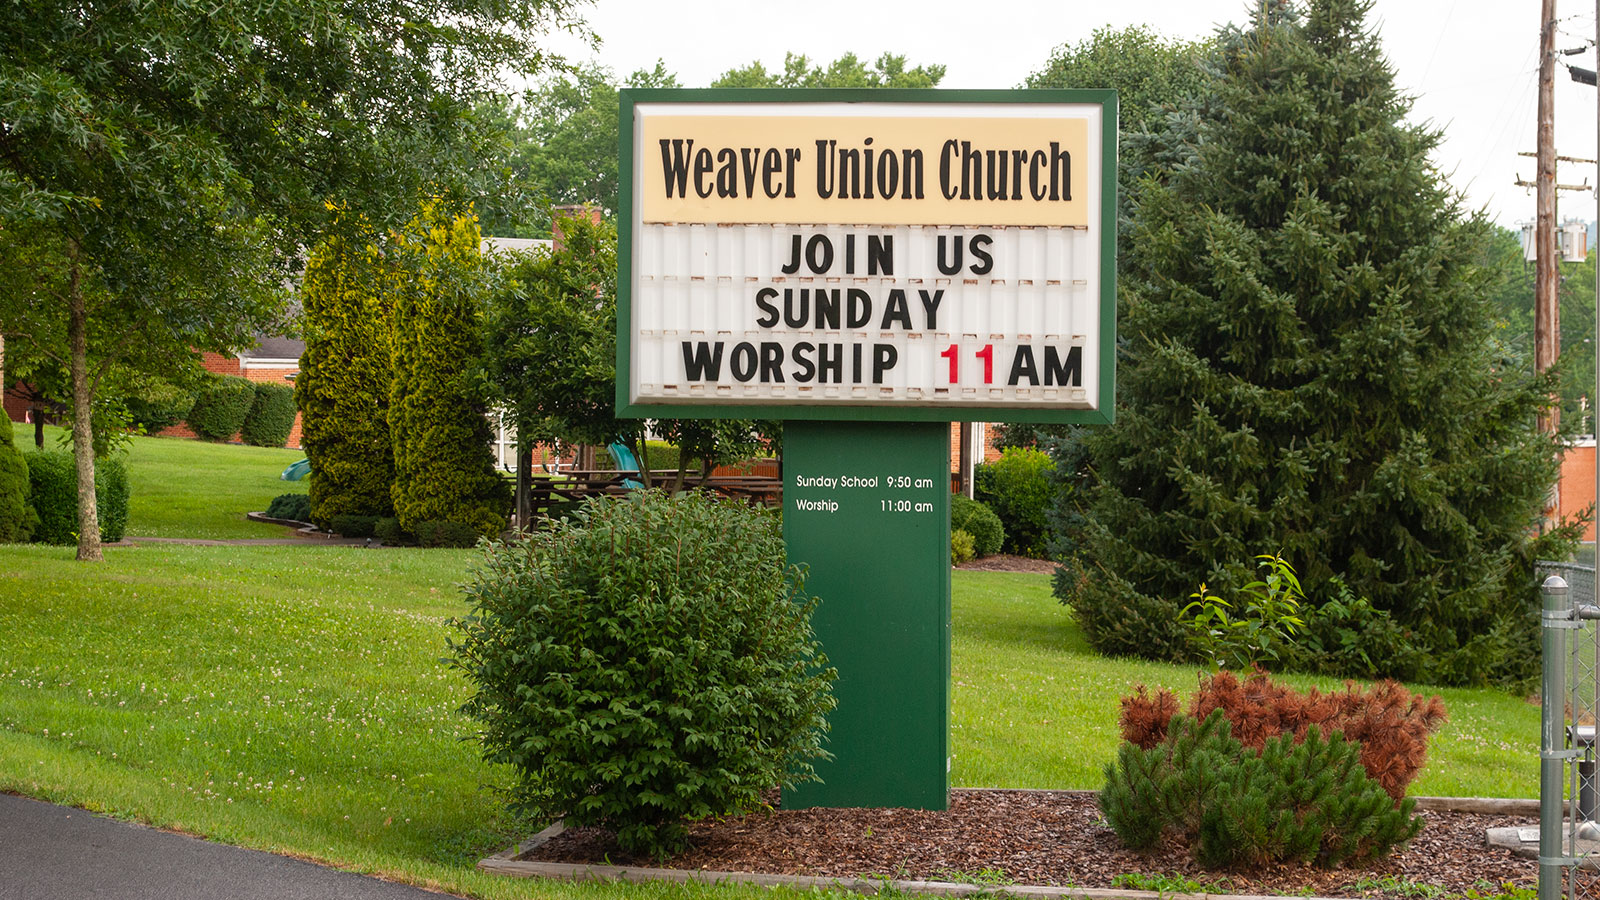 Weaver Union Church Road Sign Worship